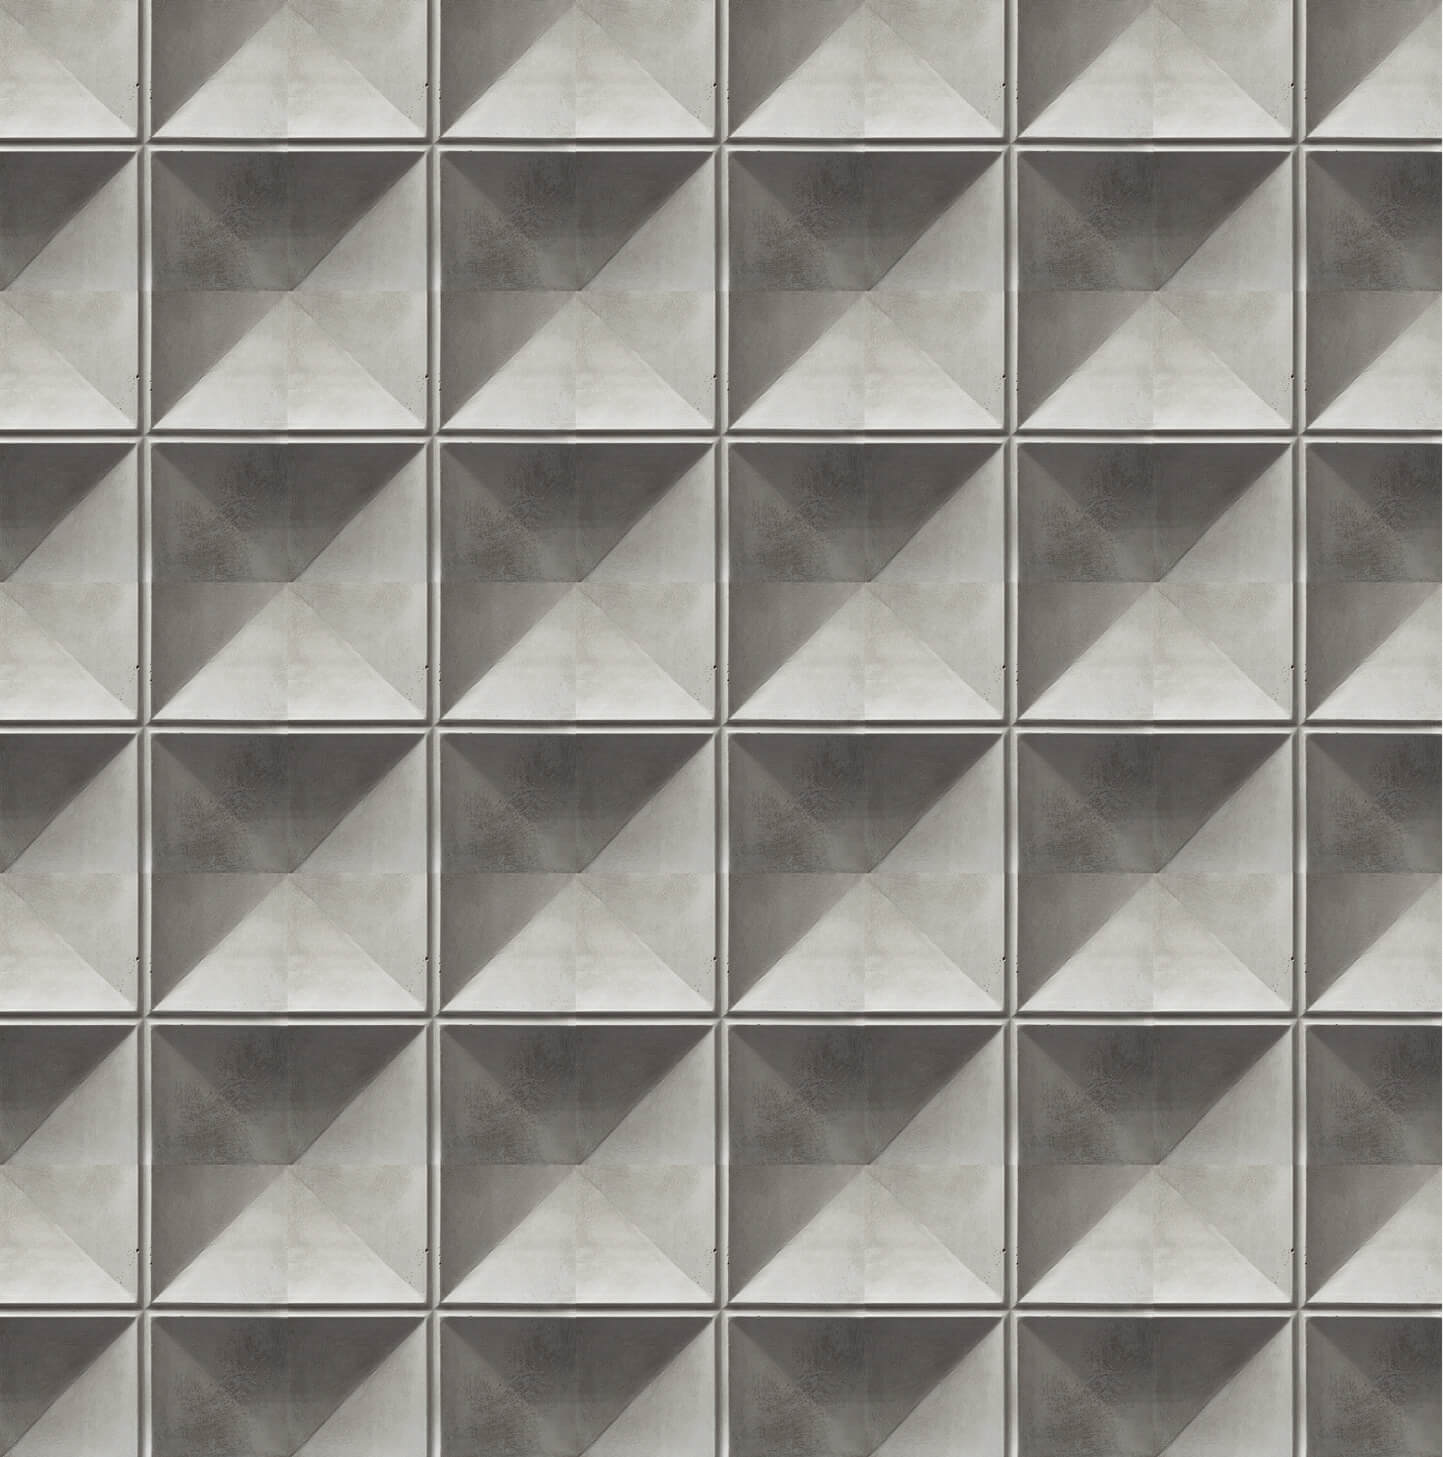 Plaster_studio_tile_sq_08_concrete